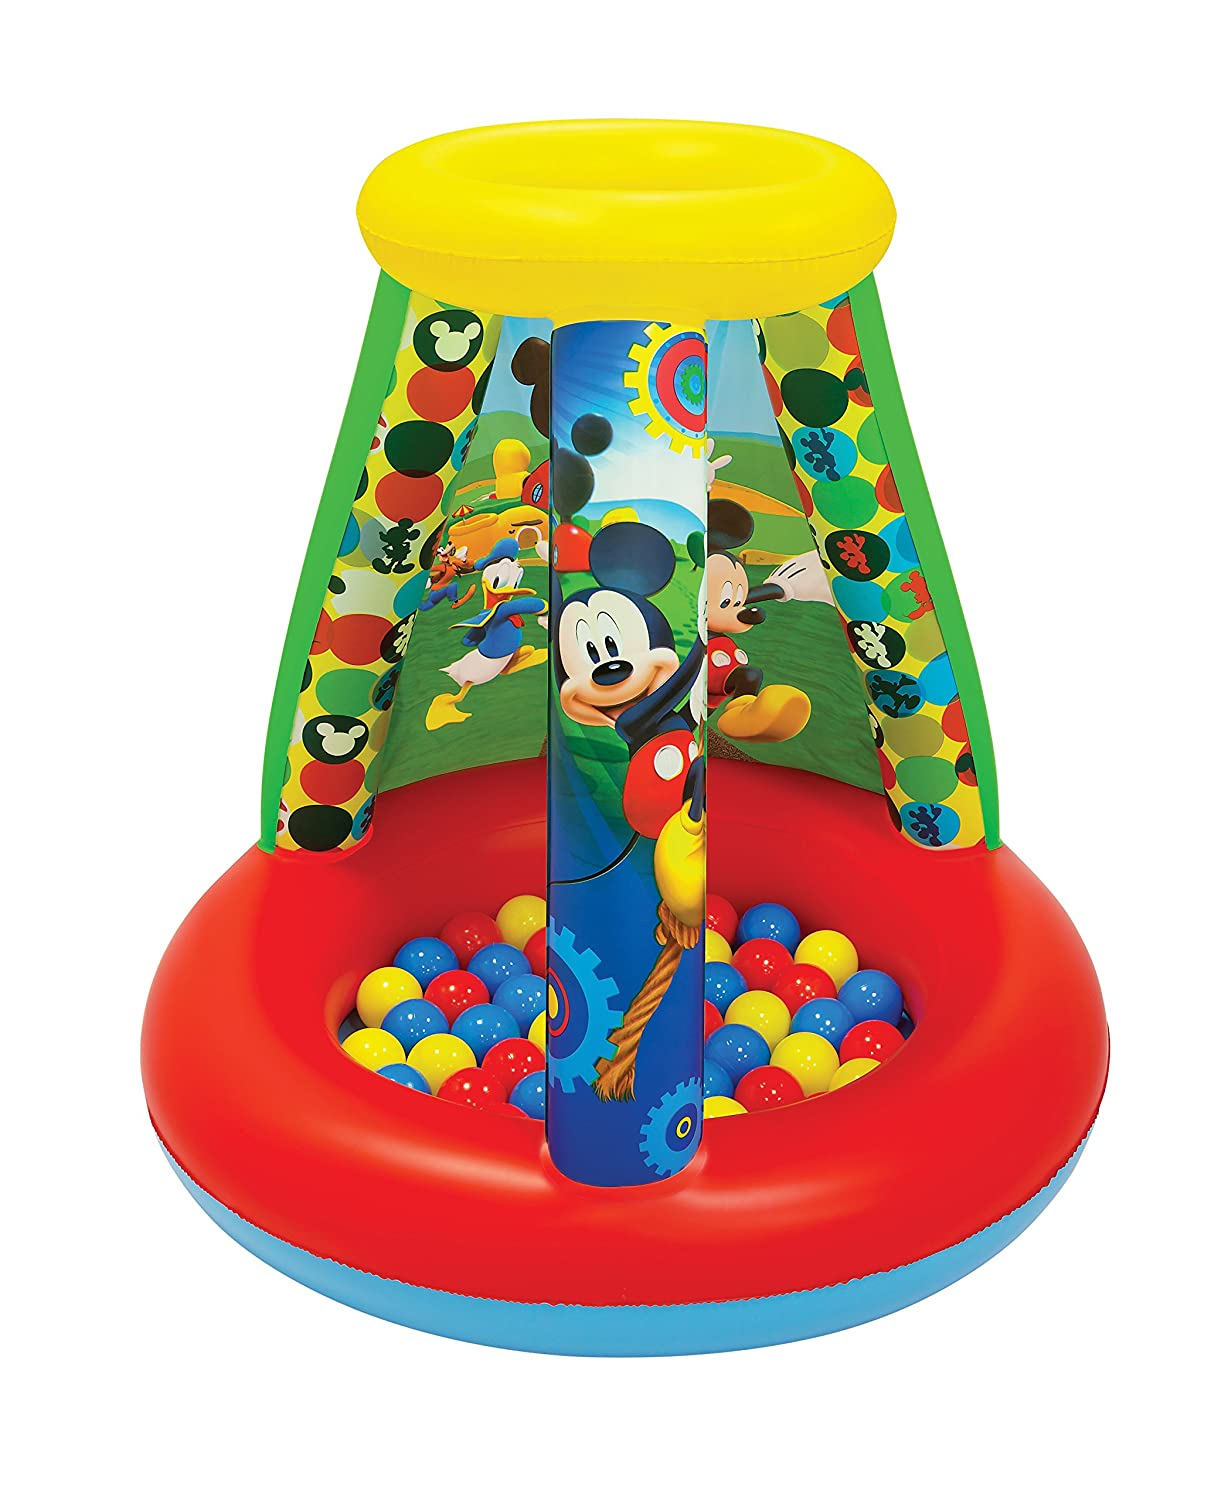 Amazon.com Mickey Mouse Club House Disney Follow Mickey Playland Set with 15 Balls Toys u0026 Games  sc 1 st  Amazon.com & Amazon.com: Mickey Mouse Club House Disney Follow Mickey Playland ...